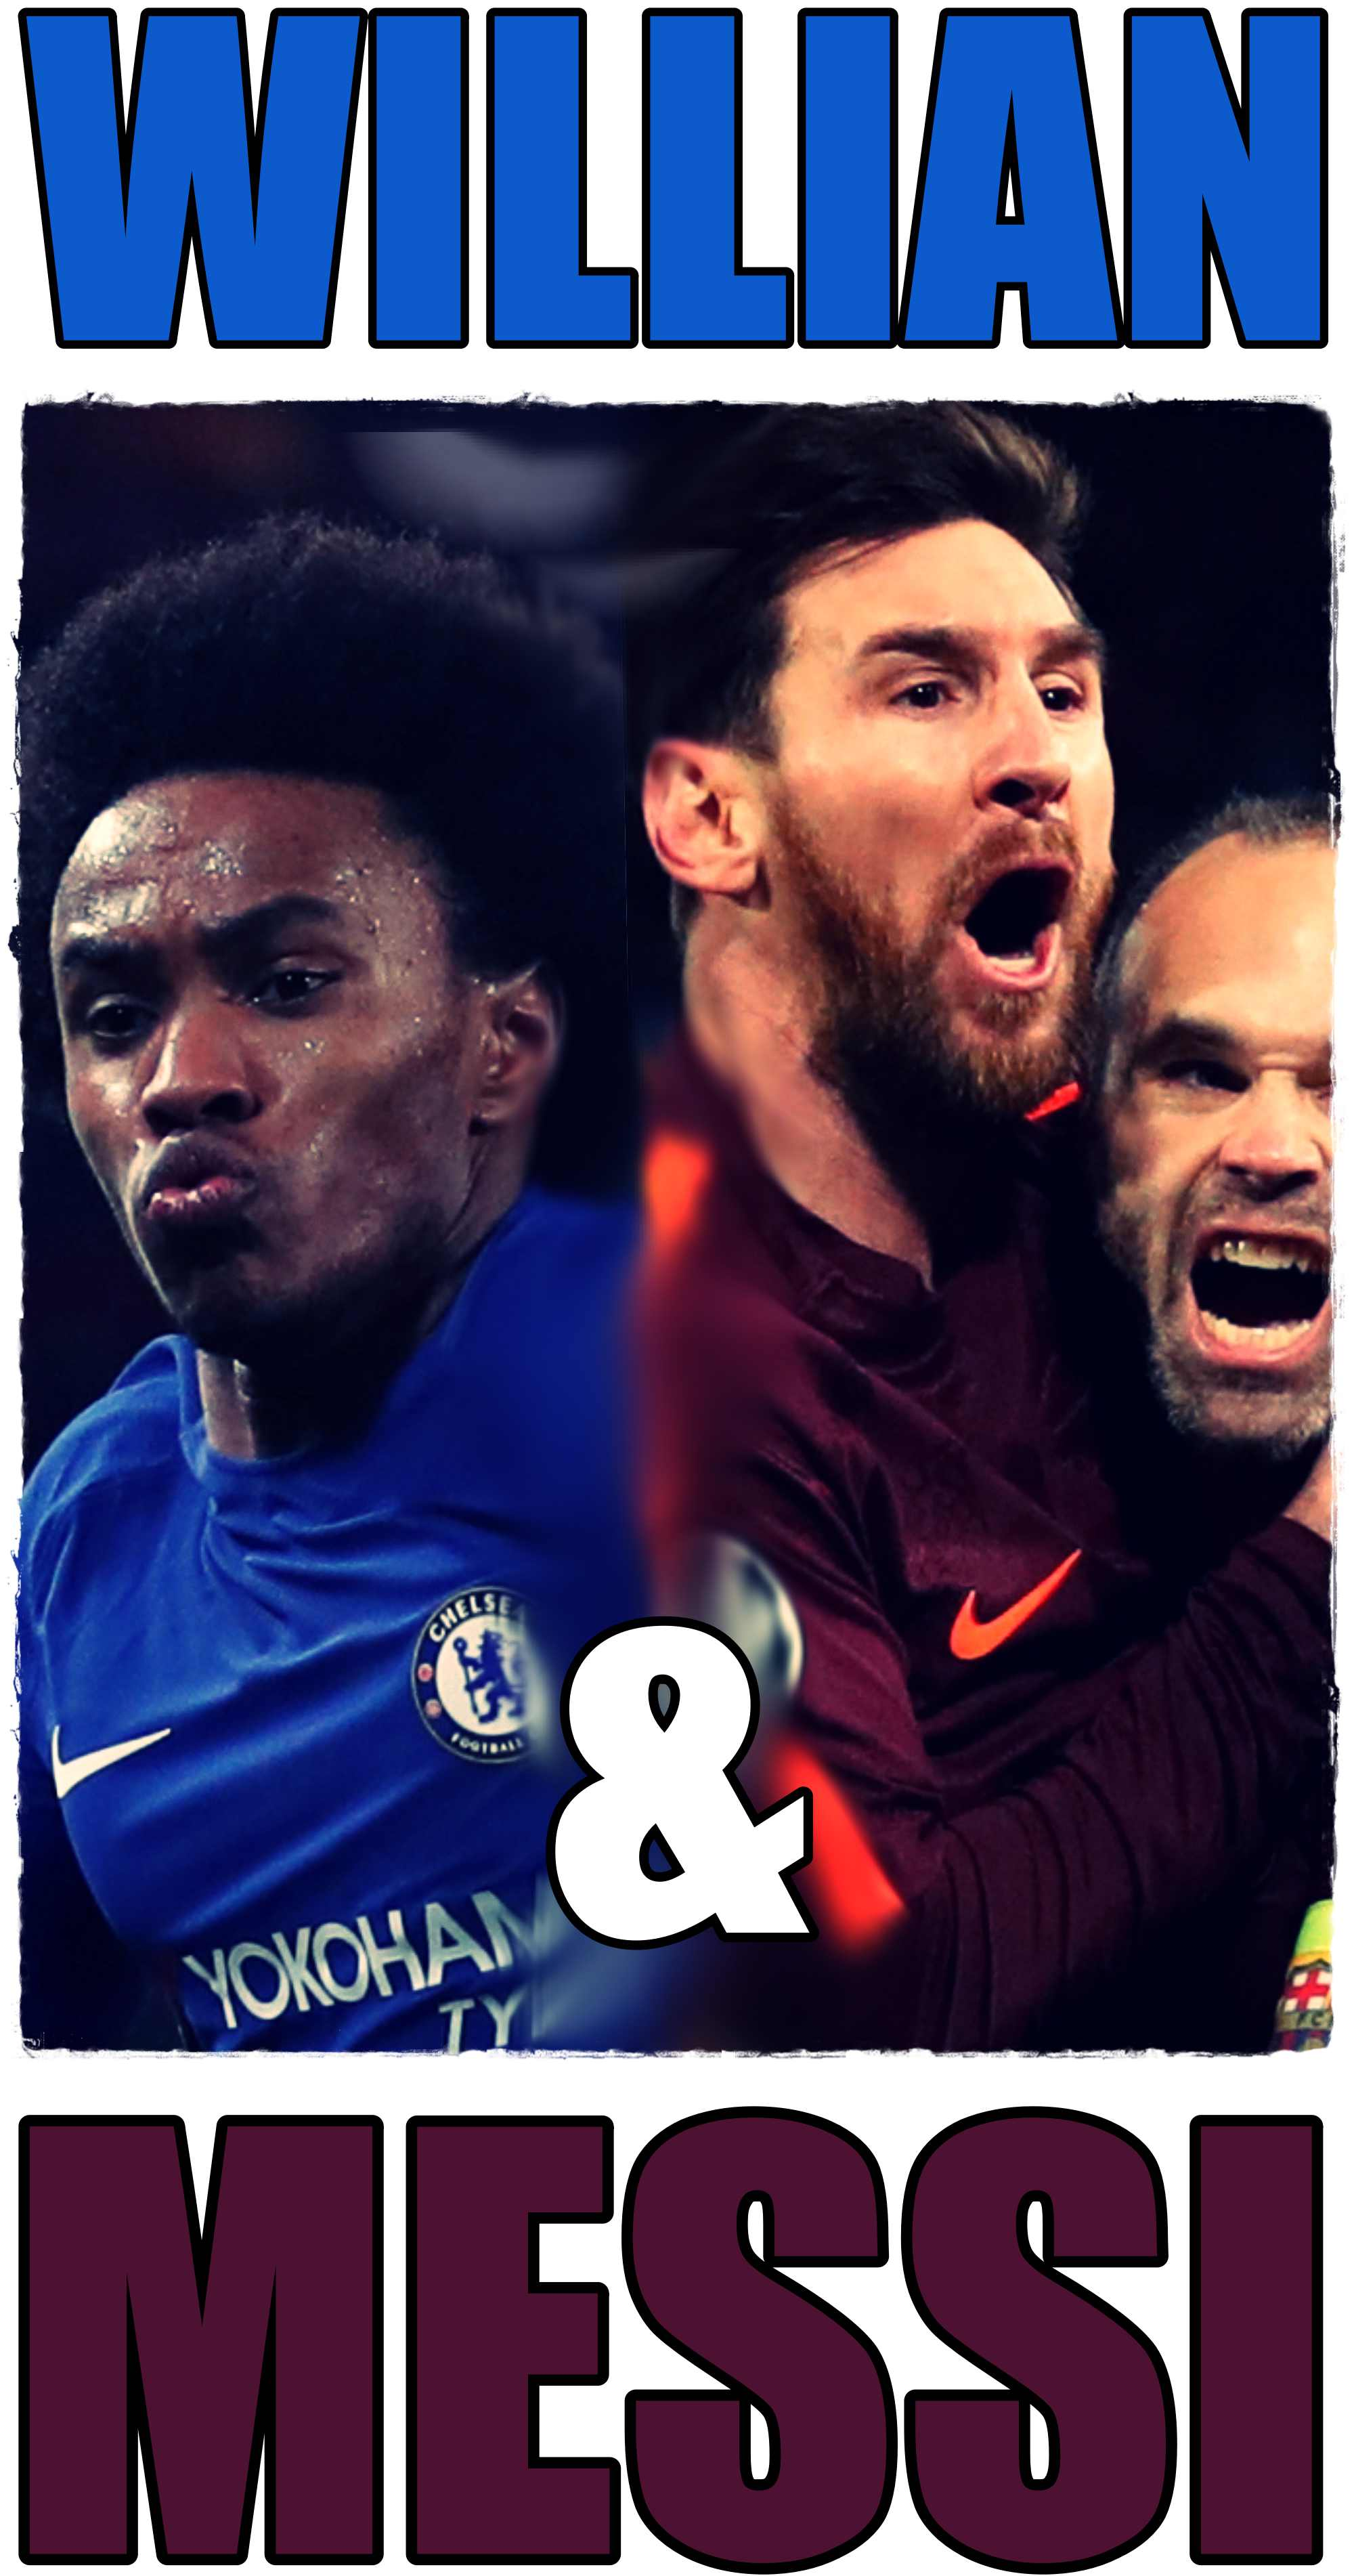 Willian Messi